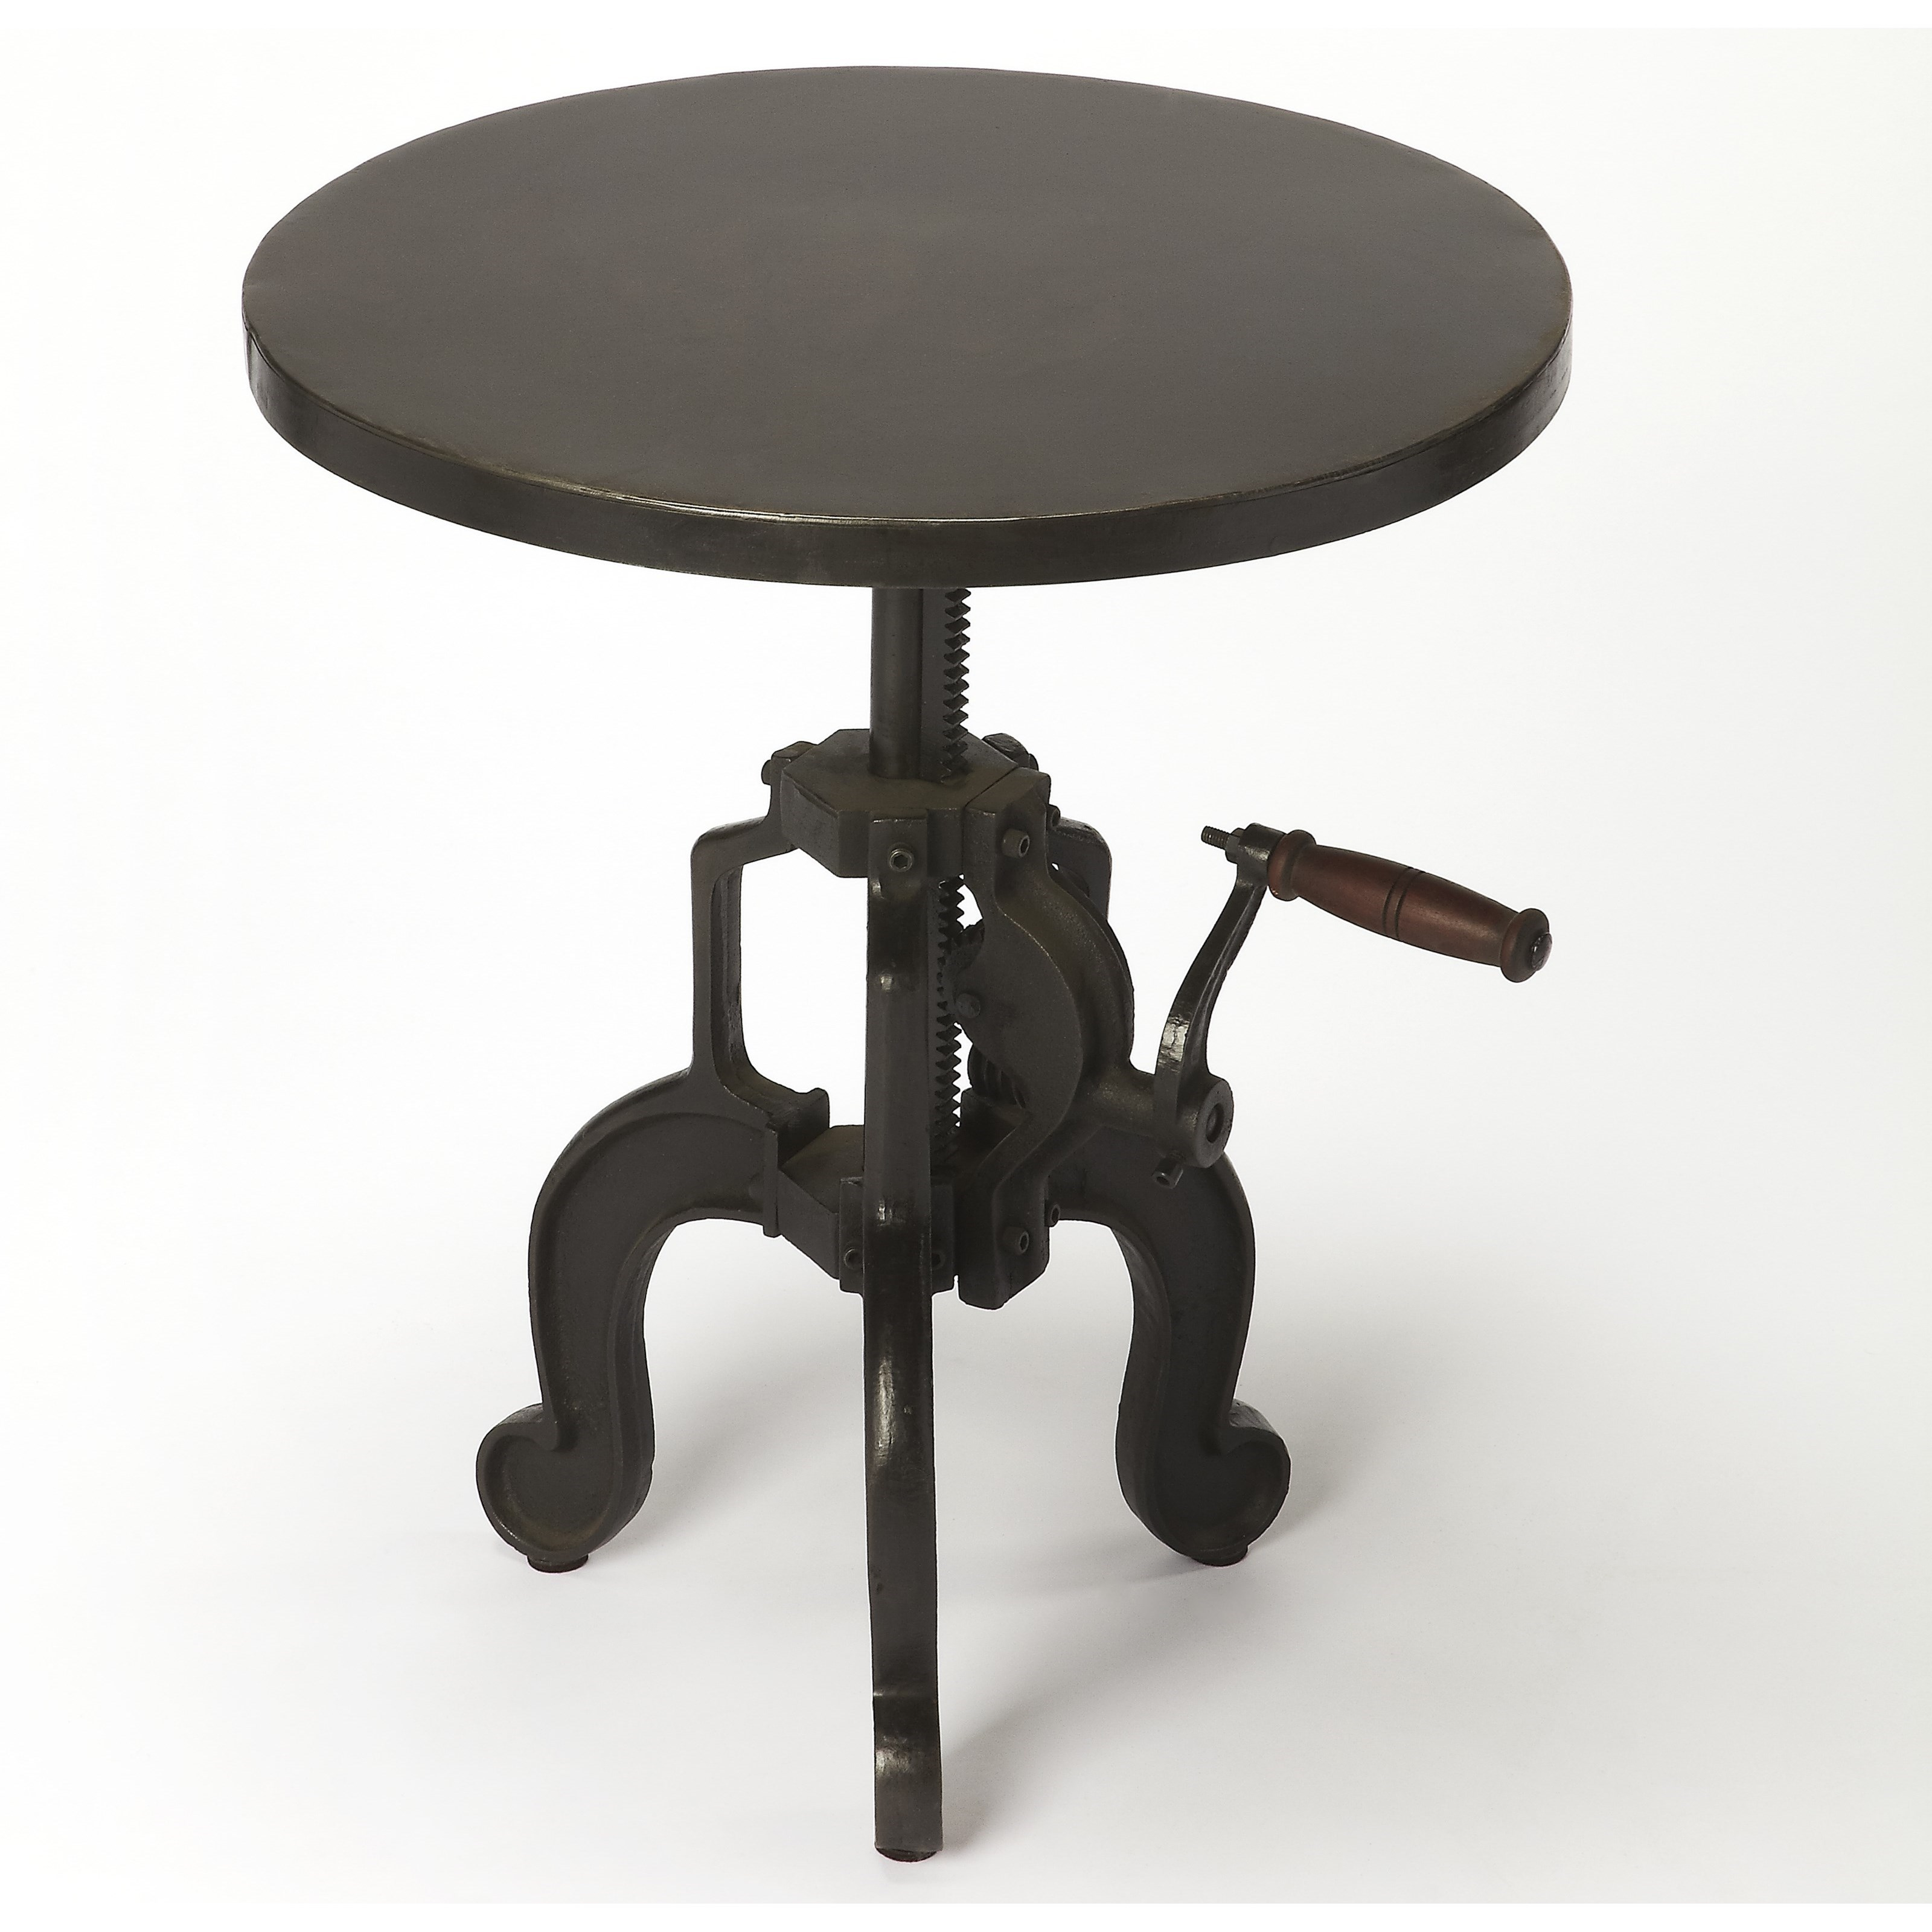 Butler Specialty Company Industrial Chic End Table - Item Number: 3682330